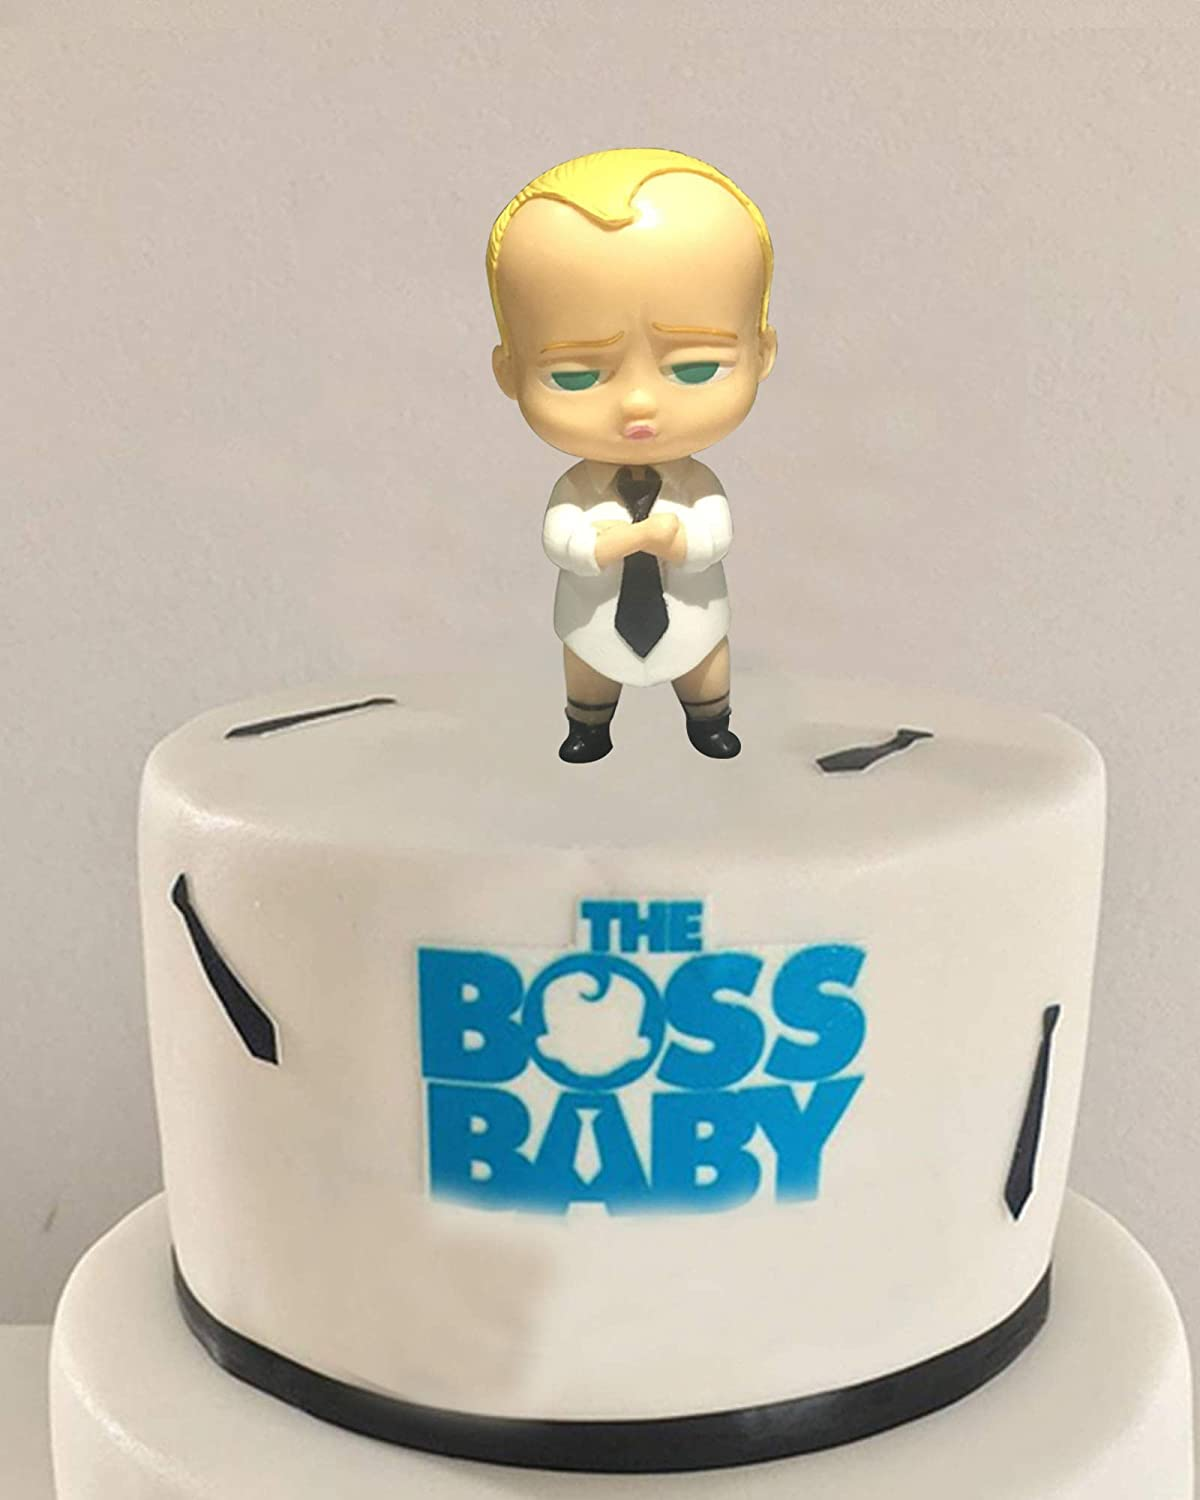 Swell 1 Pcs Boss Baby Cupcake Toppers Kids Birthday Party Baby Shower Funny Birthday Cards Online Barepcheapnameinfo